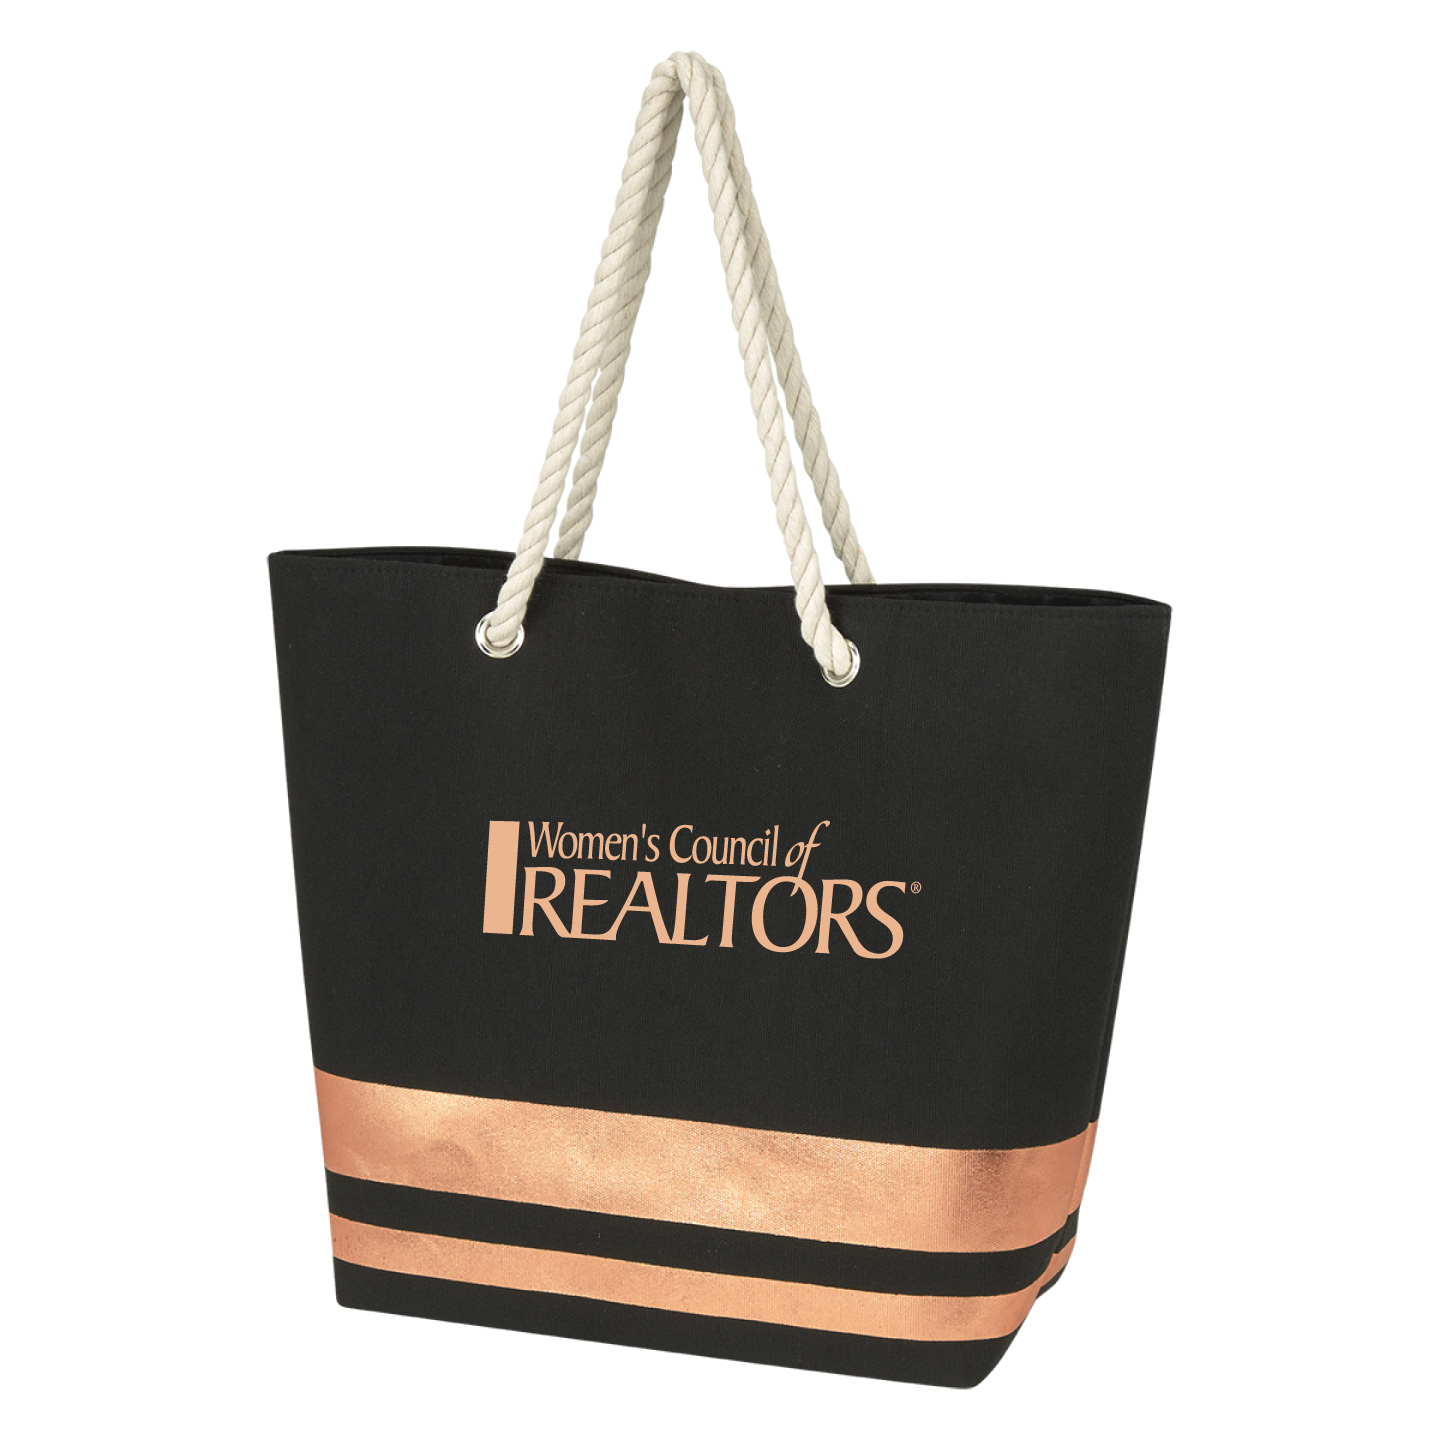 WCR Metallic Rope Tote Convention, Installment, Tote, Bag, Metallic, Shiny, Sparkle, Fun, Grocery, Document, President, Network